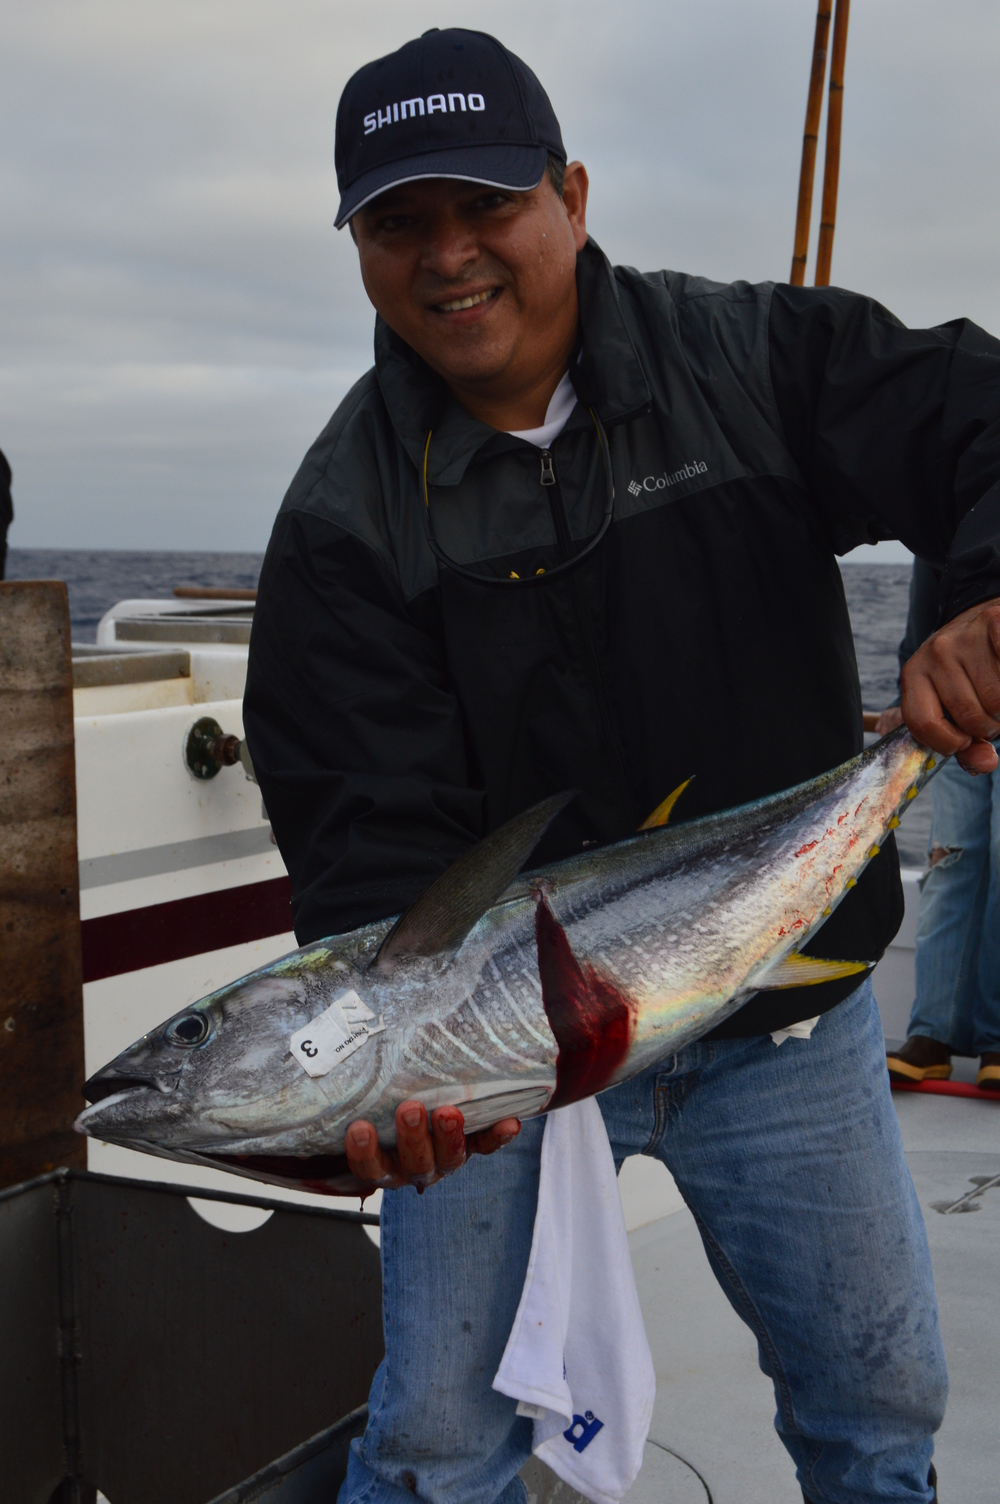 . . . and some nice Yellowfin!